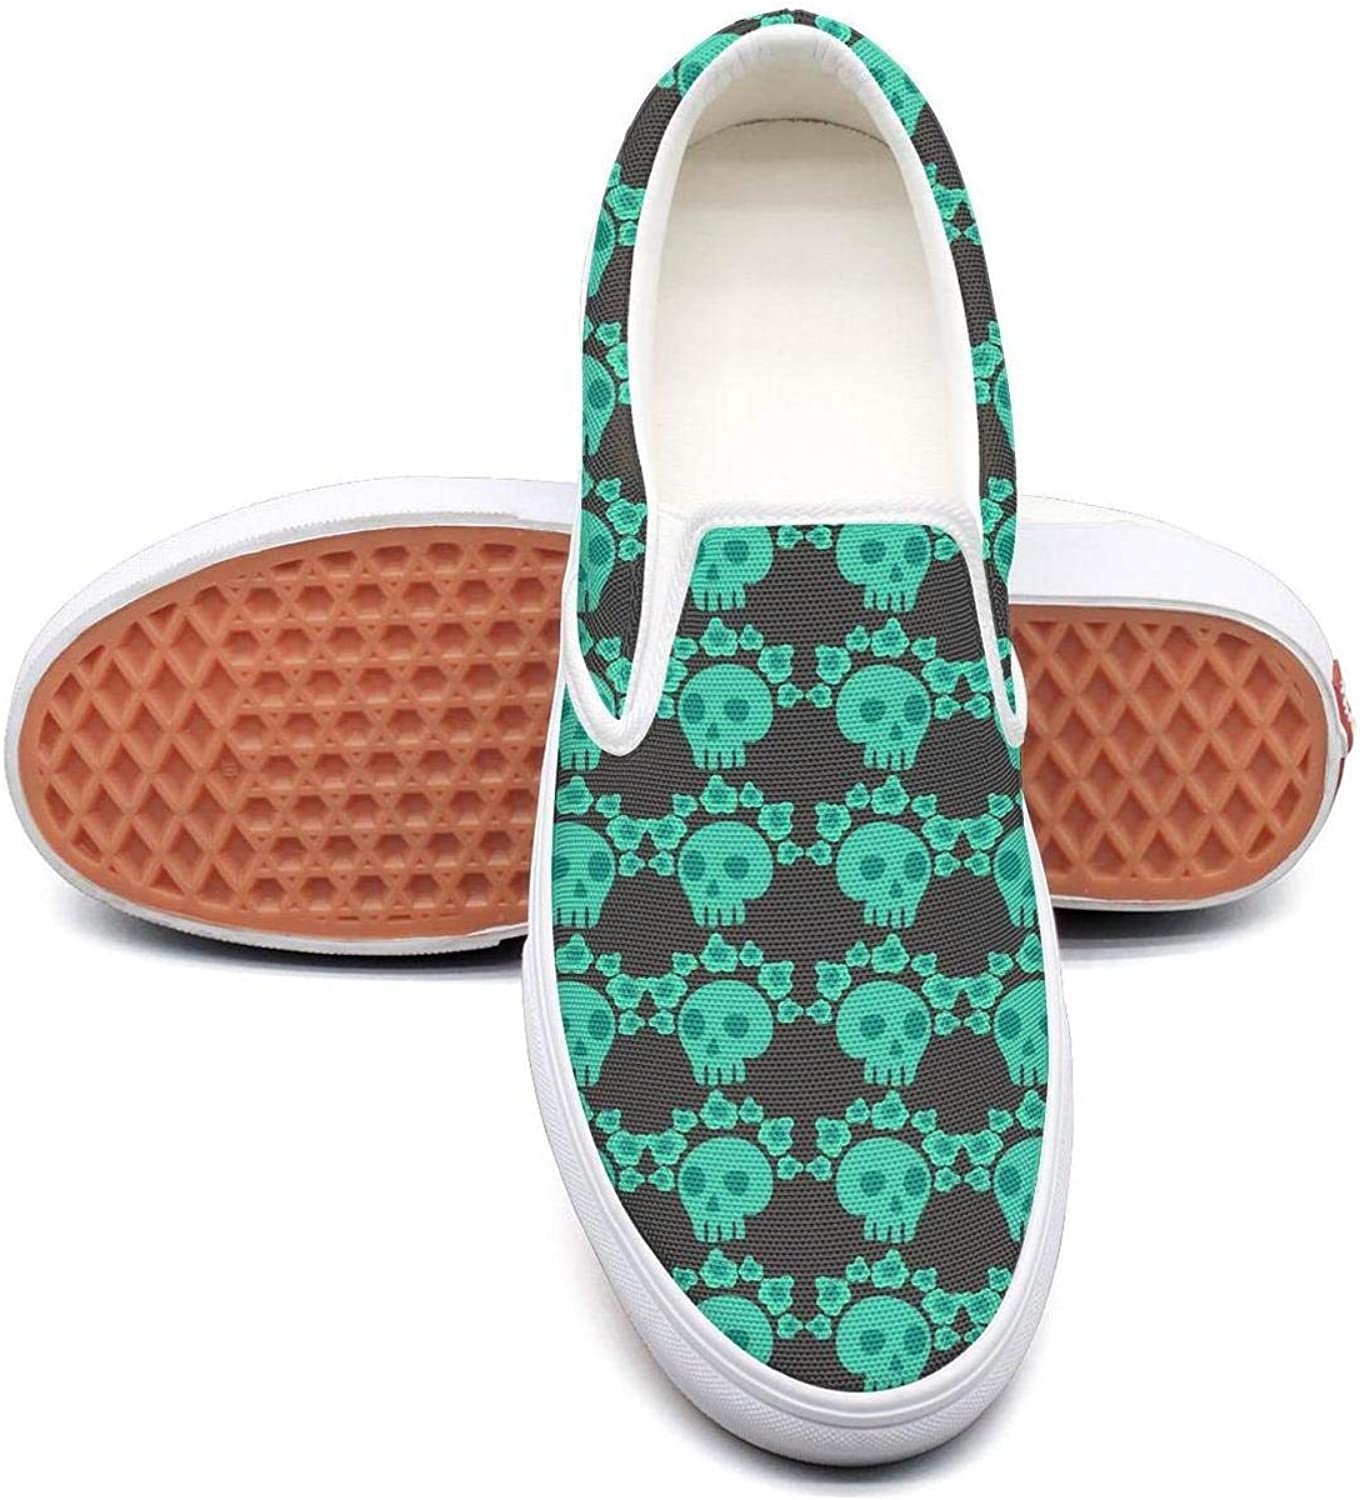 Green pink Skull Head Slip On Superior Comfort Loafers Canvas shoes for Women Comfortable